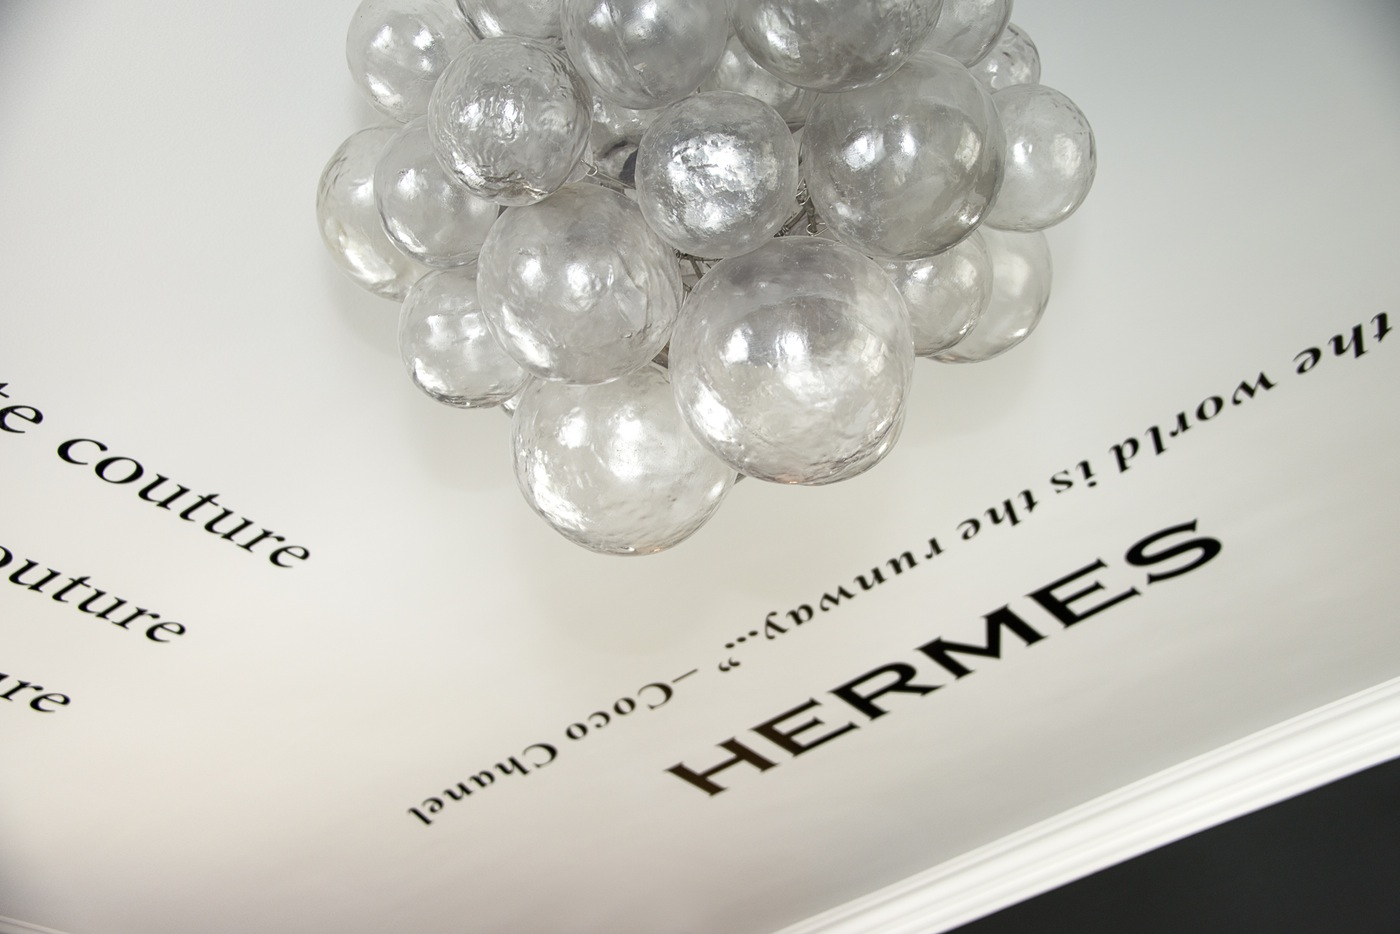 HERMES chanel prada gucci valentino wall decal decals murals quotes sticker vynil crystal balloon chandelier fashion blogger walk in closet ideas inspiration home office eclectic style glam decor